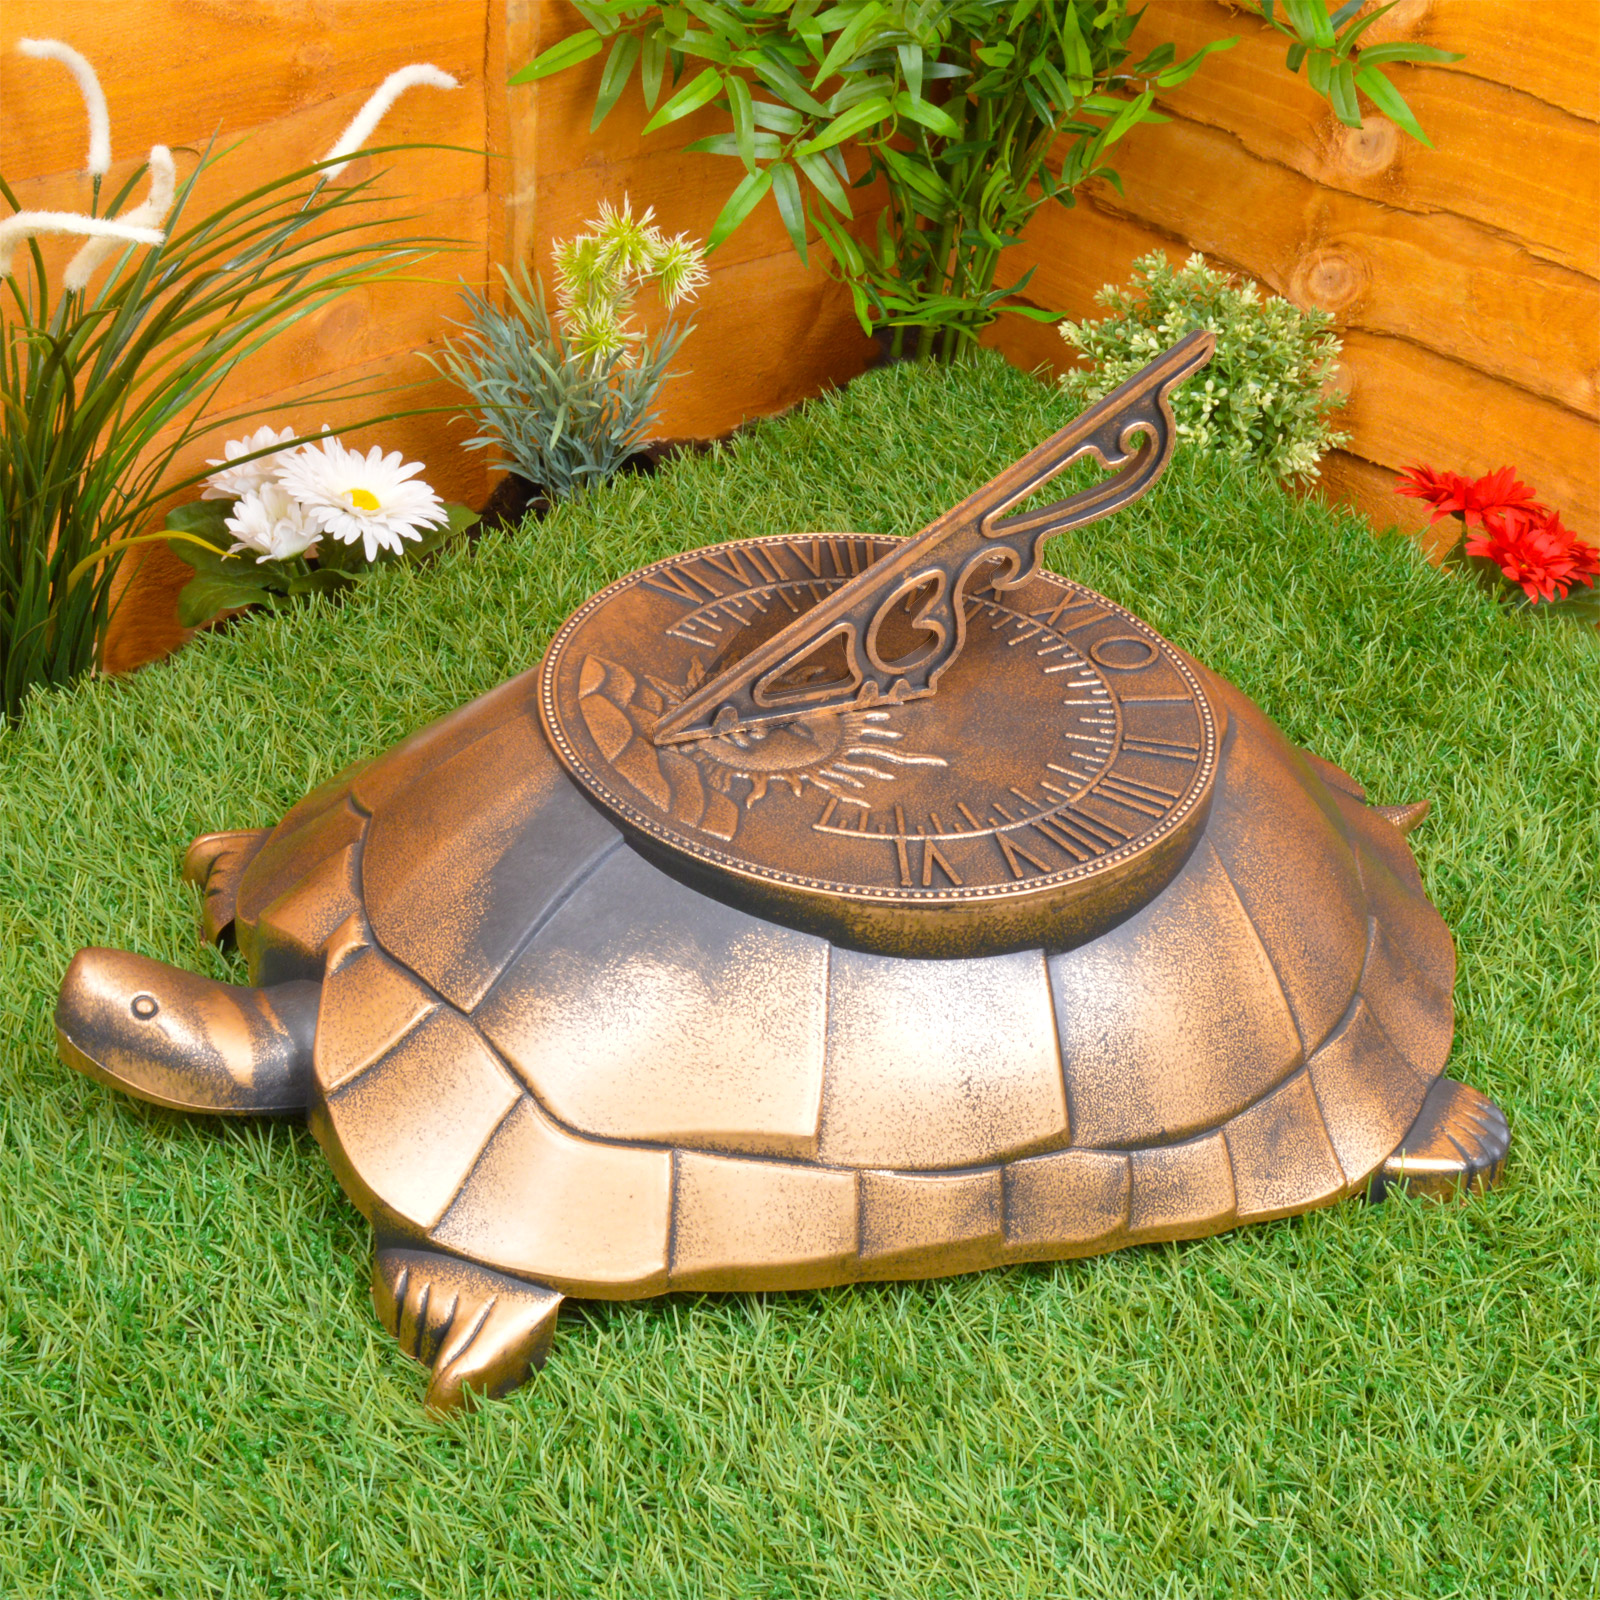 Sundial garden ornament - Tortoise Sundial Garden Large Lightweight Novelty Decoration Ornament